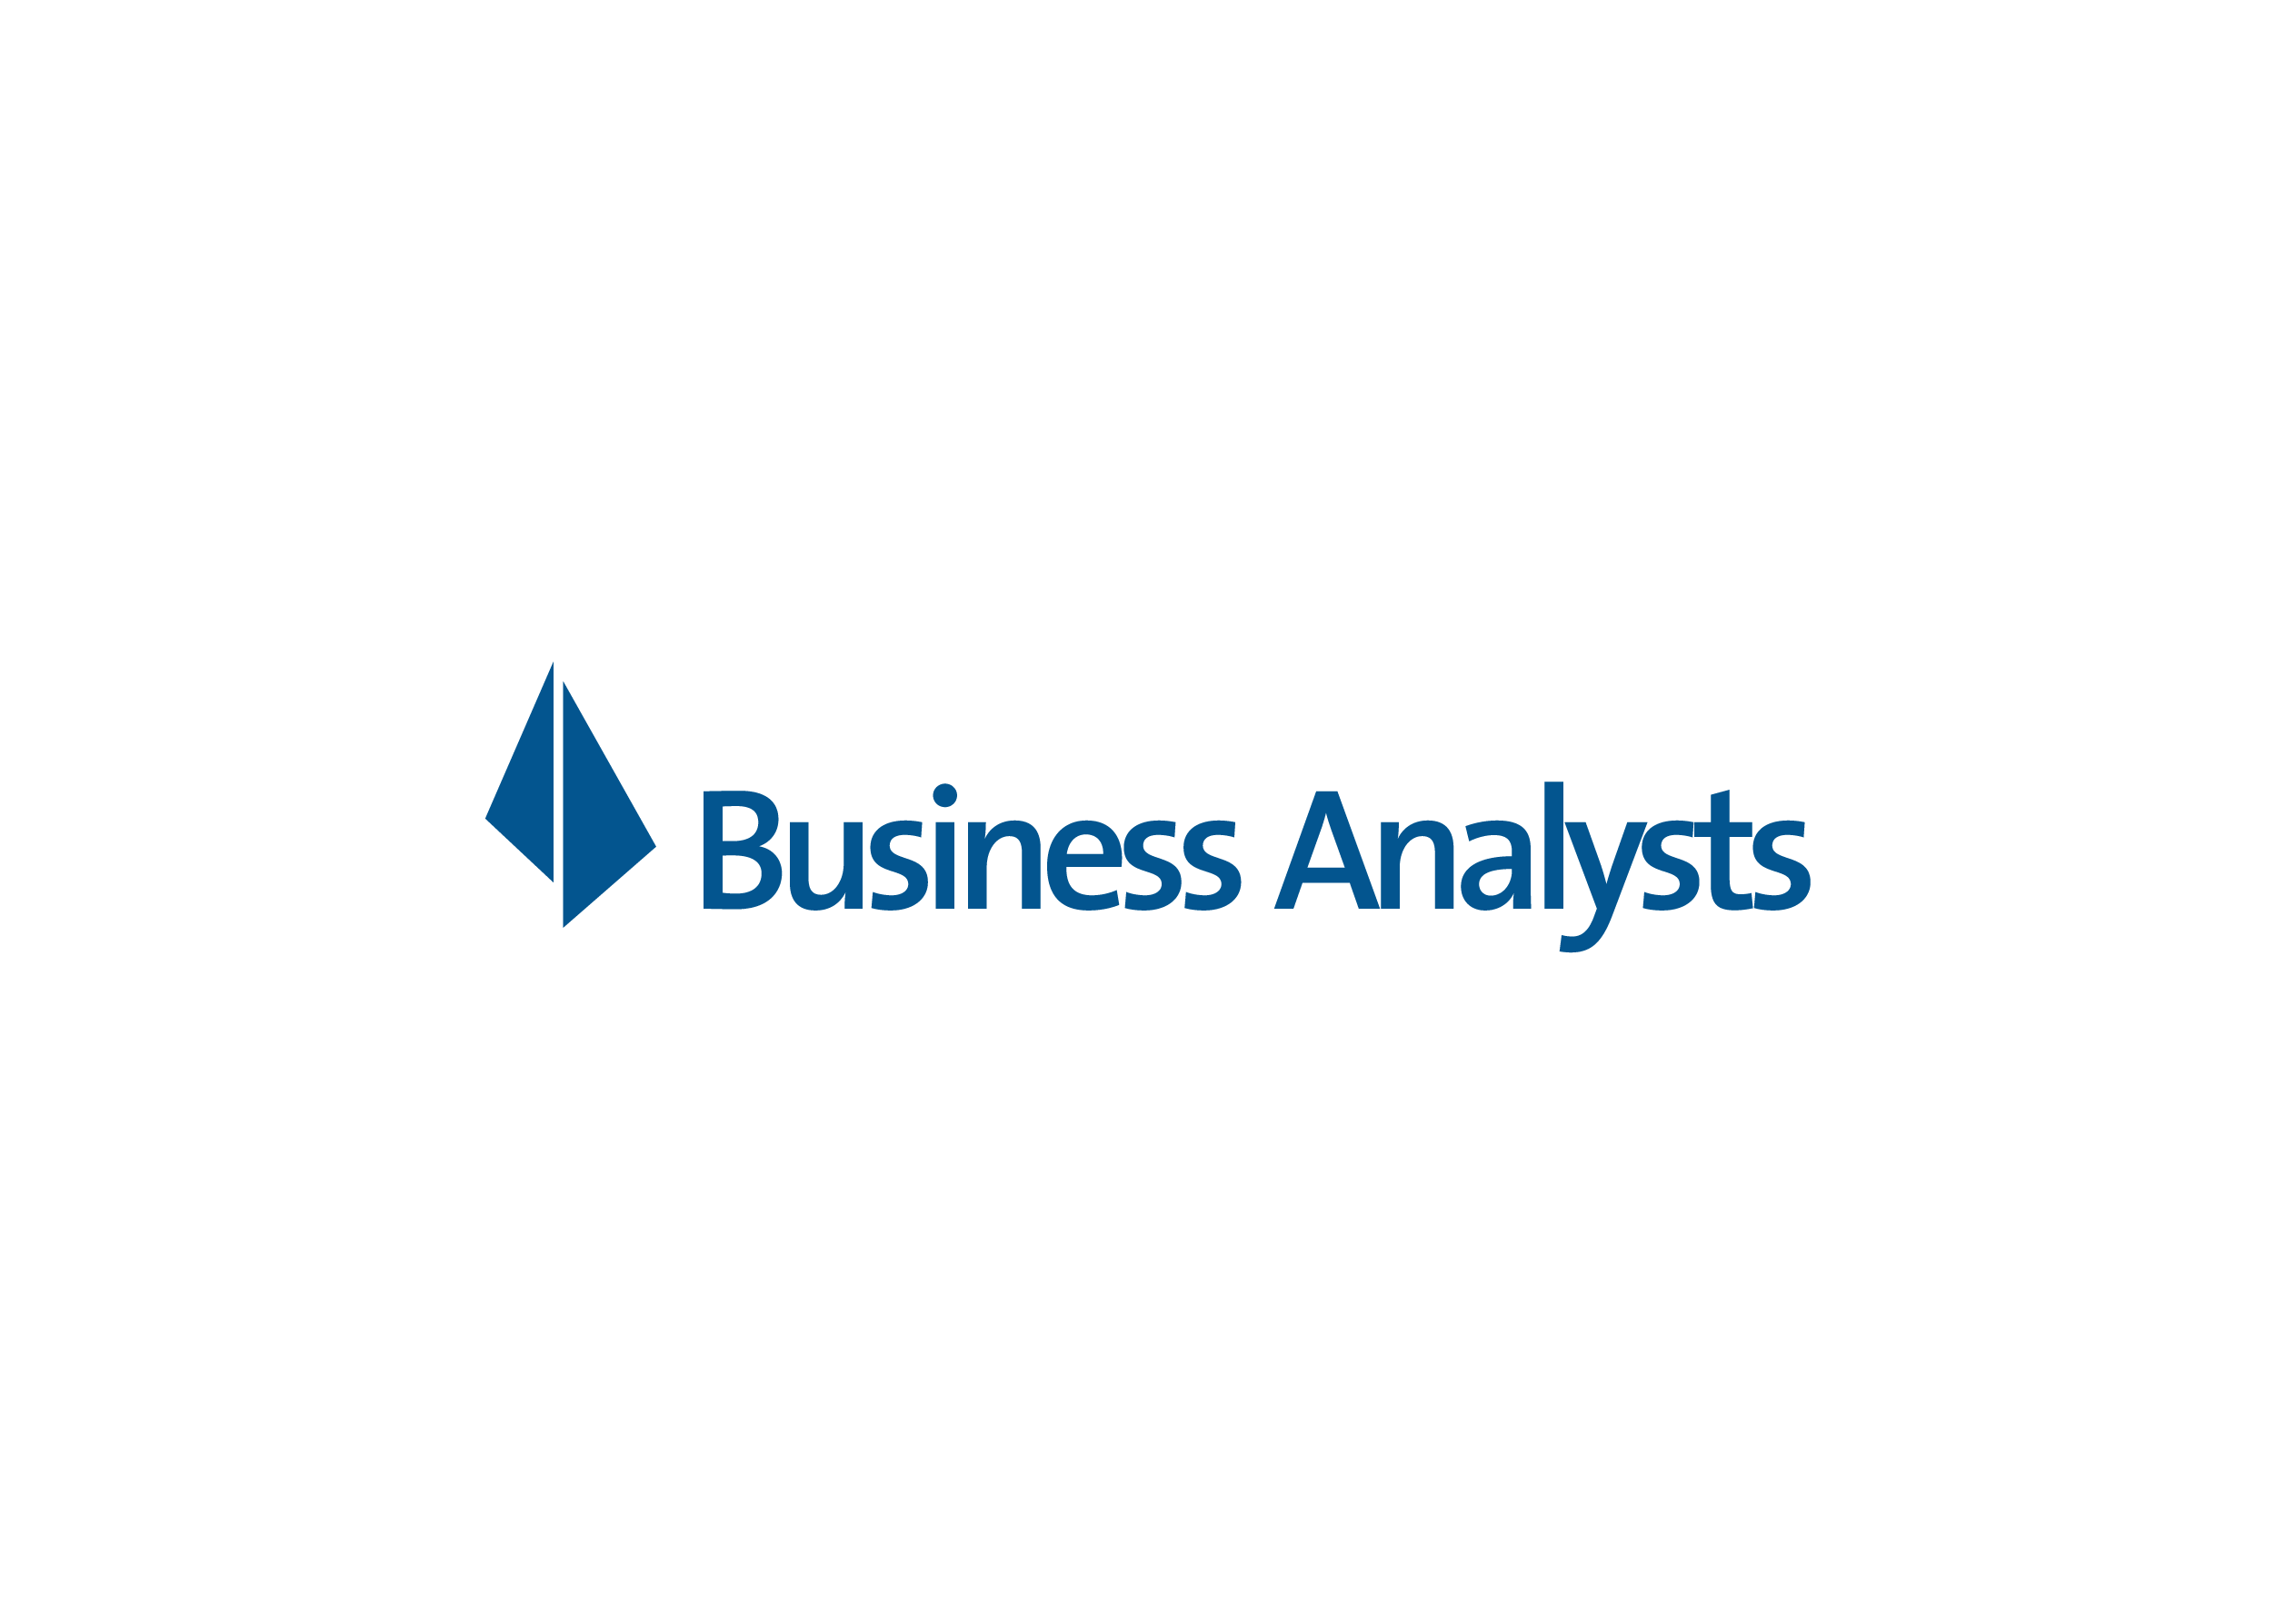 Business Analysts Pty Ltd